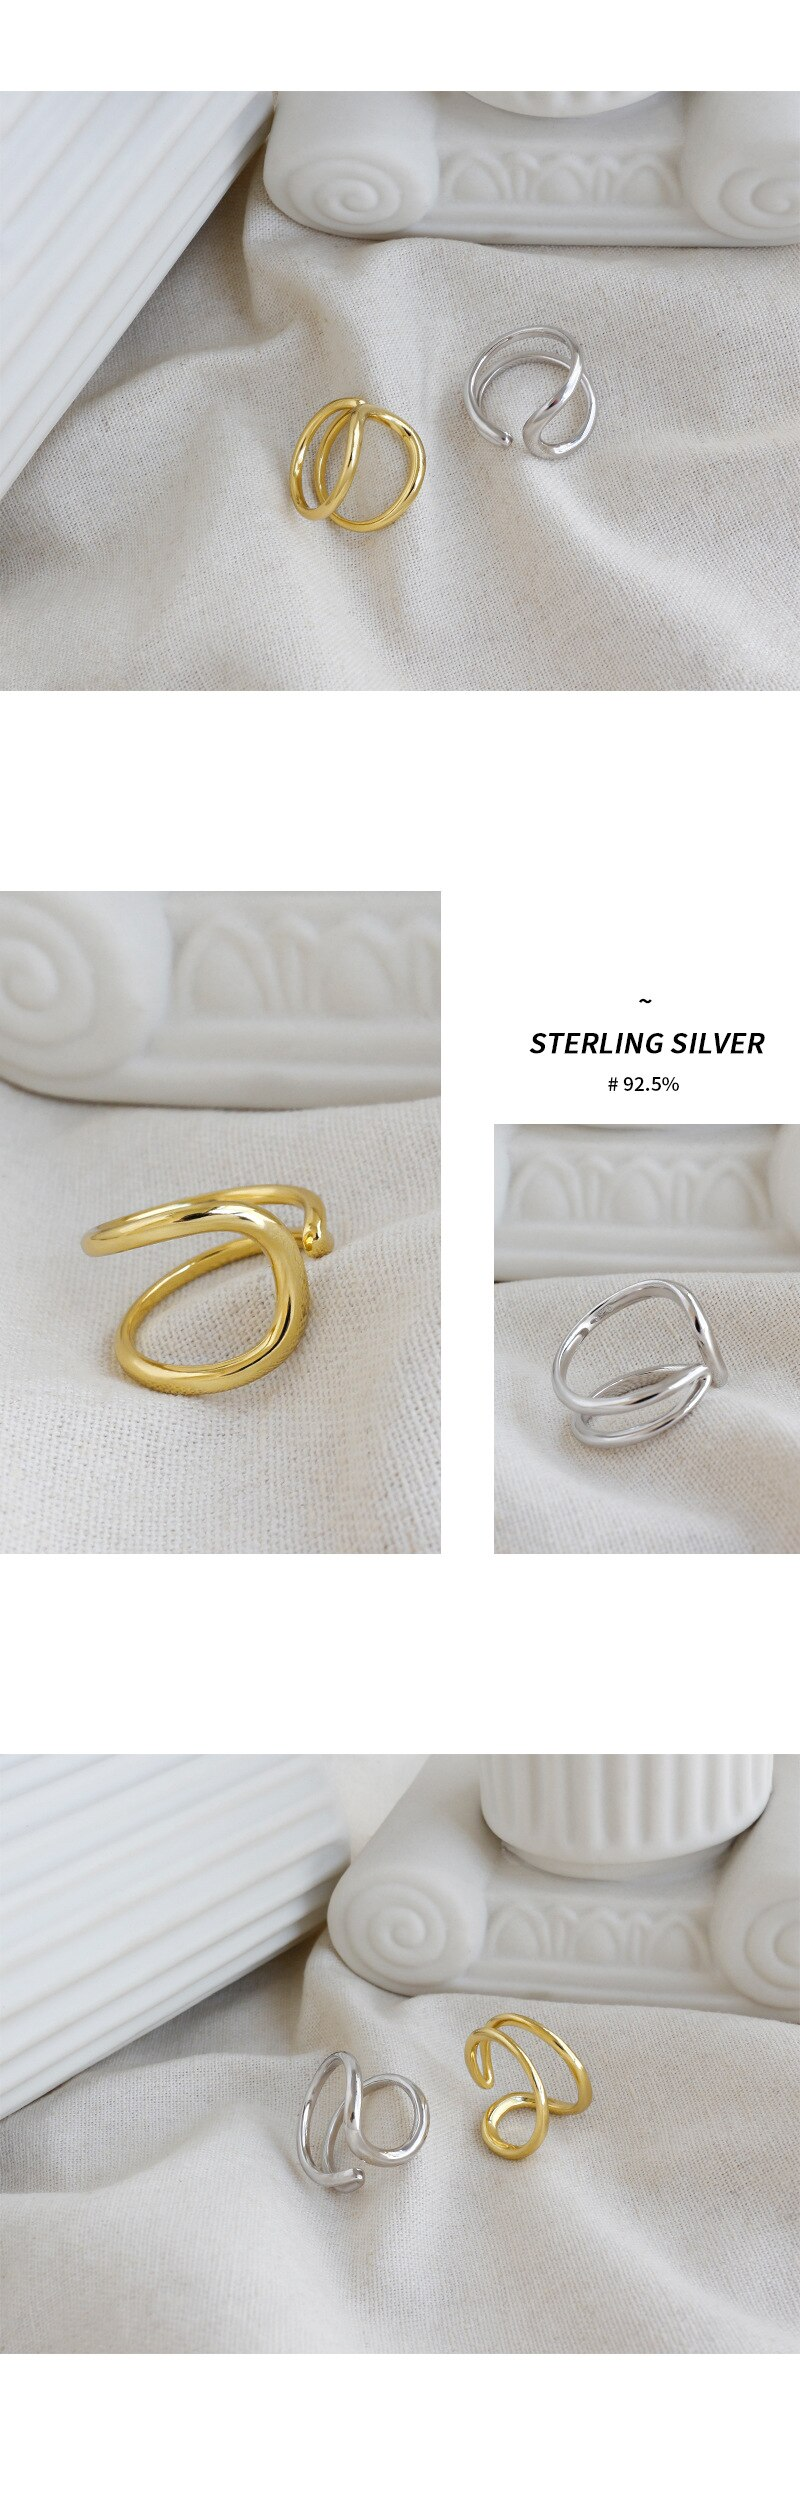 Silvology 925 Sterling Silver Double Layer Glossy Line Rings for Women Rotation Line Elegant Creative Rings 925 Jewelry Silver